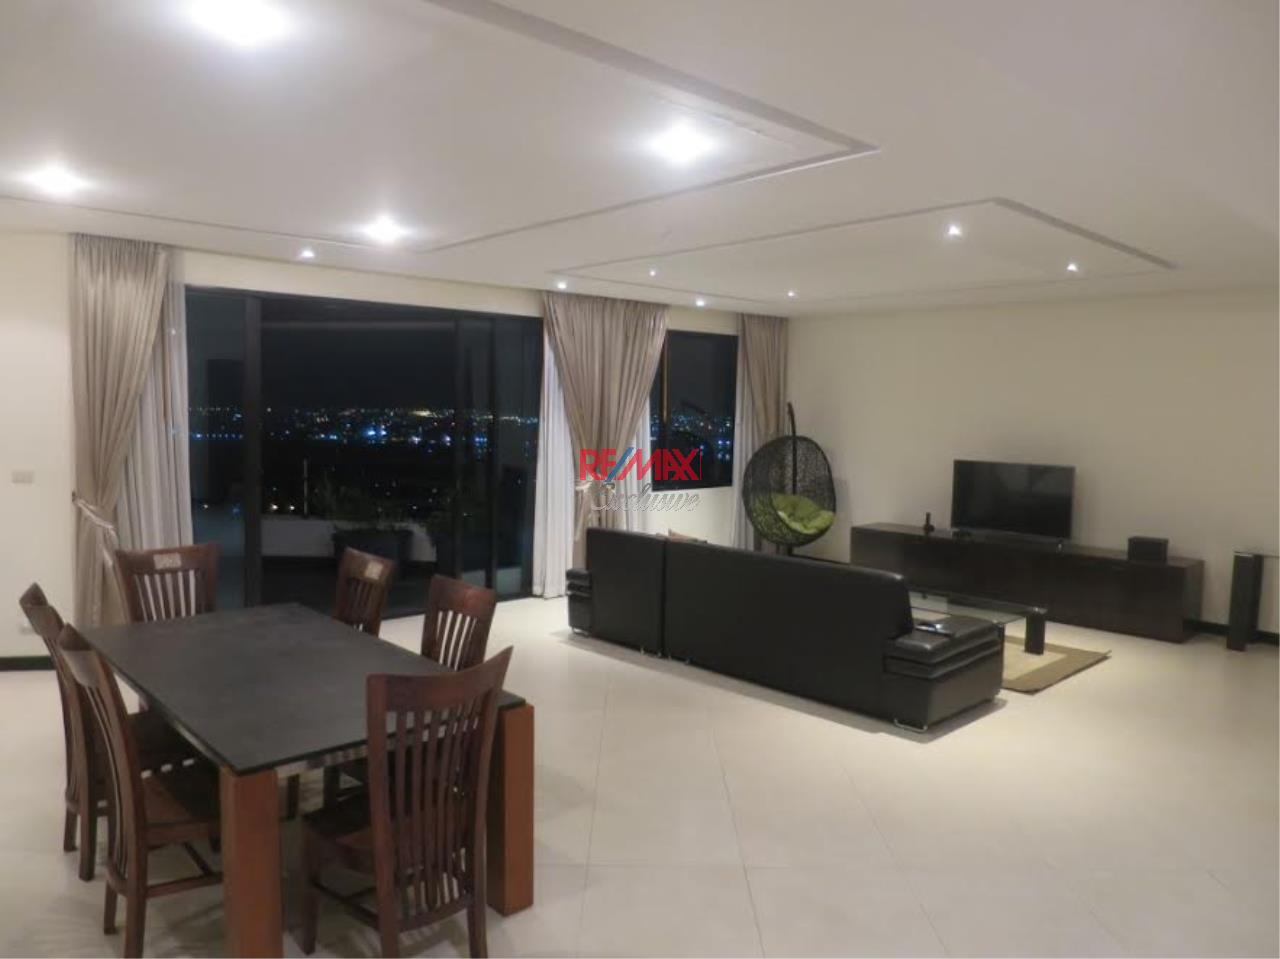 RE/MAX Exclusive Agency's Royal River Place Condo, 3 Bedrooms, 3 Bathrooms, Only For Sale 20,000,000 THB 3